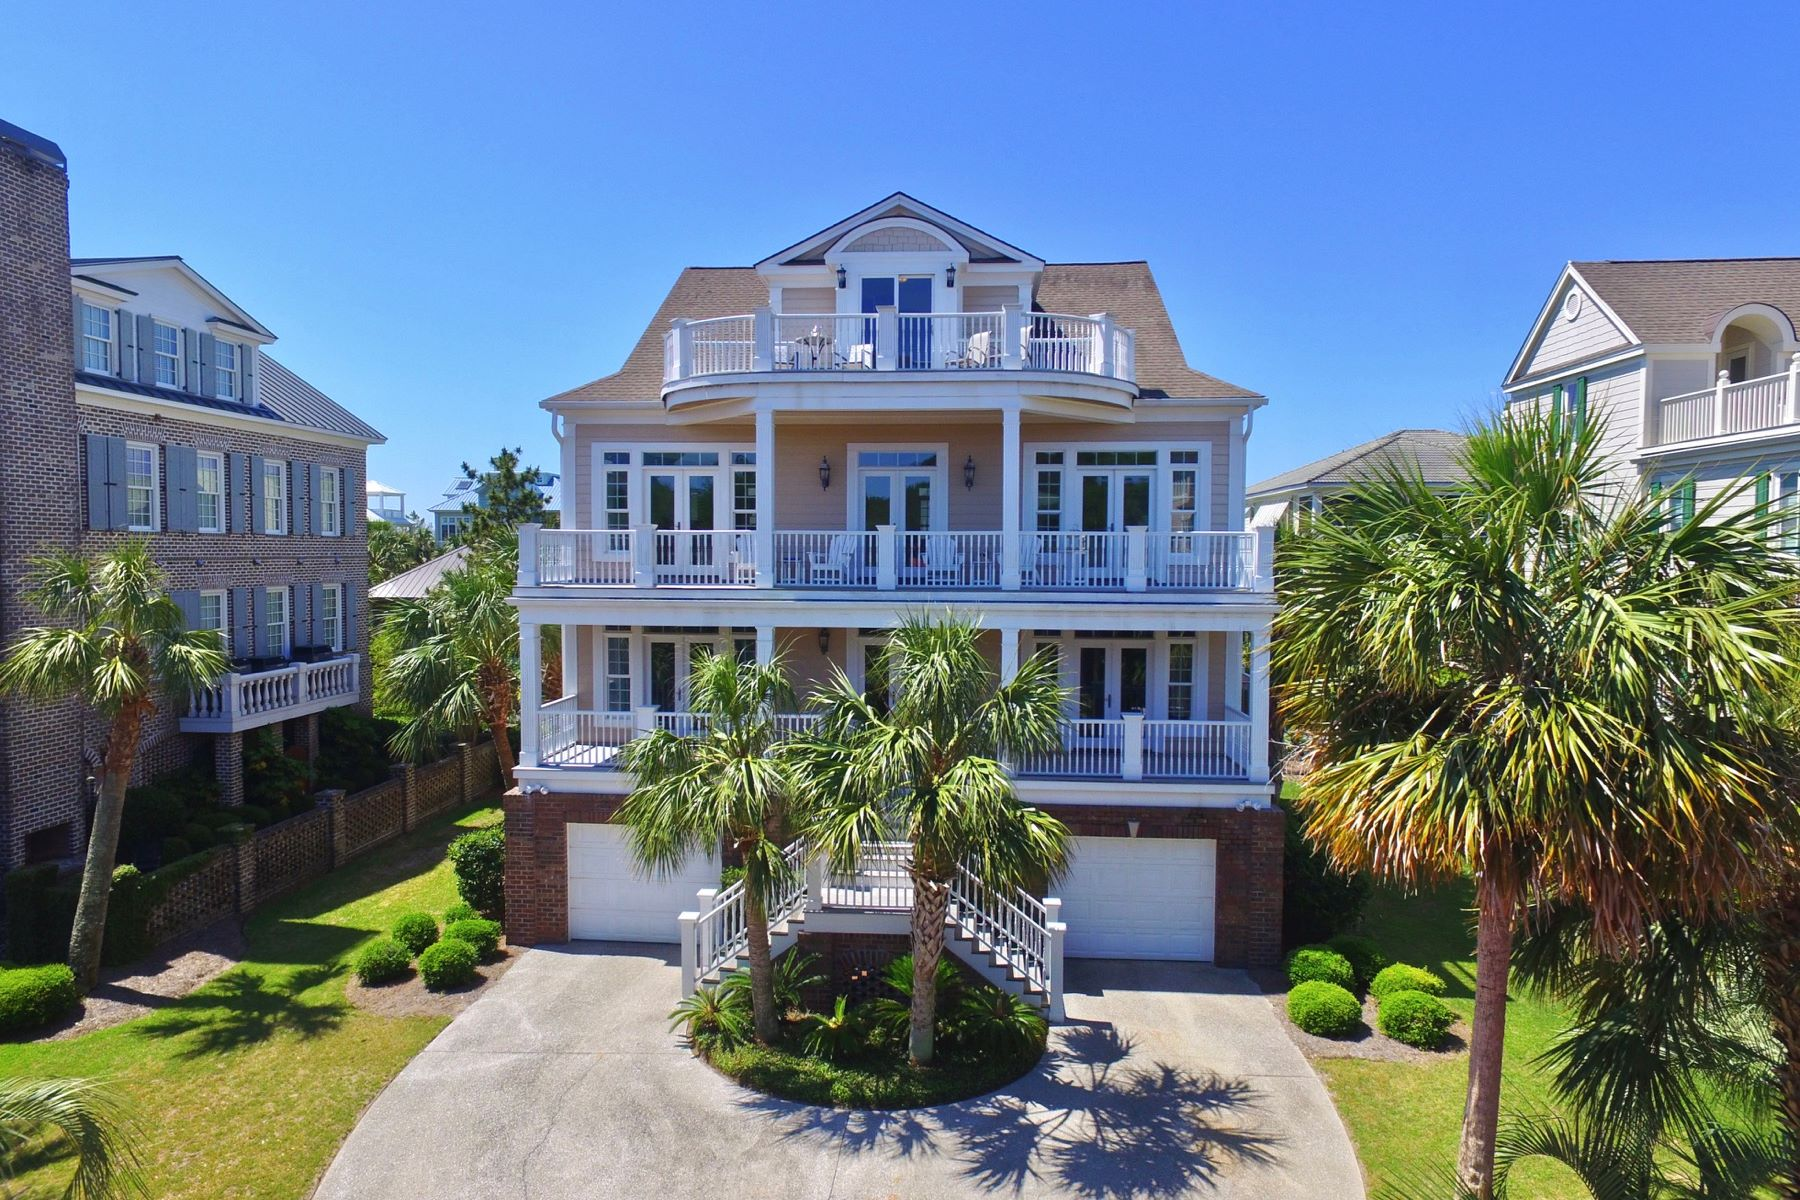 Single Family Home for Sale at 41 Beachwalker Court, Georgetown, SC 29440 41 Beachwalker Court, Georgetown, South Carolina 29440 United States